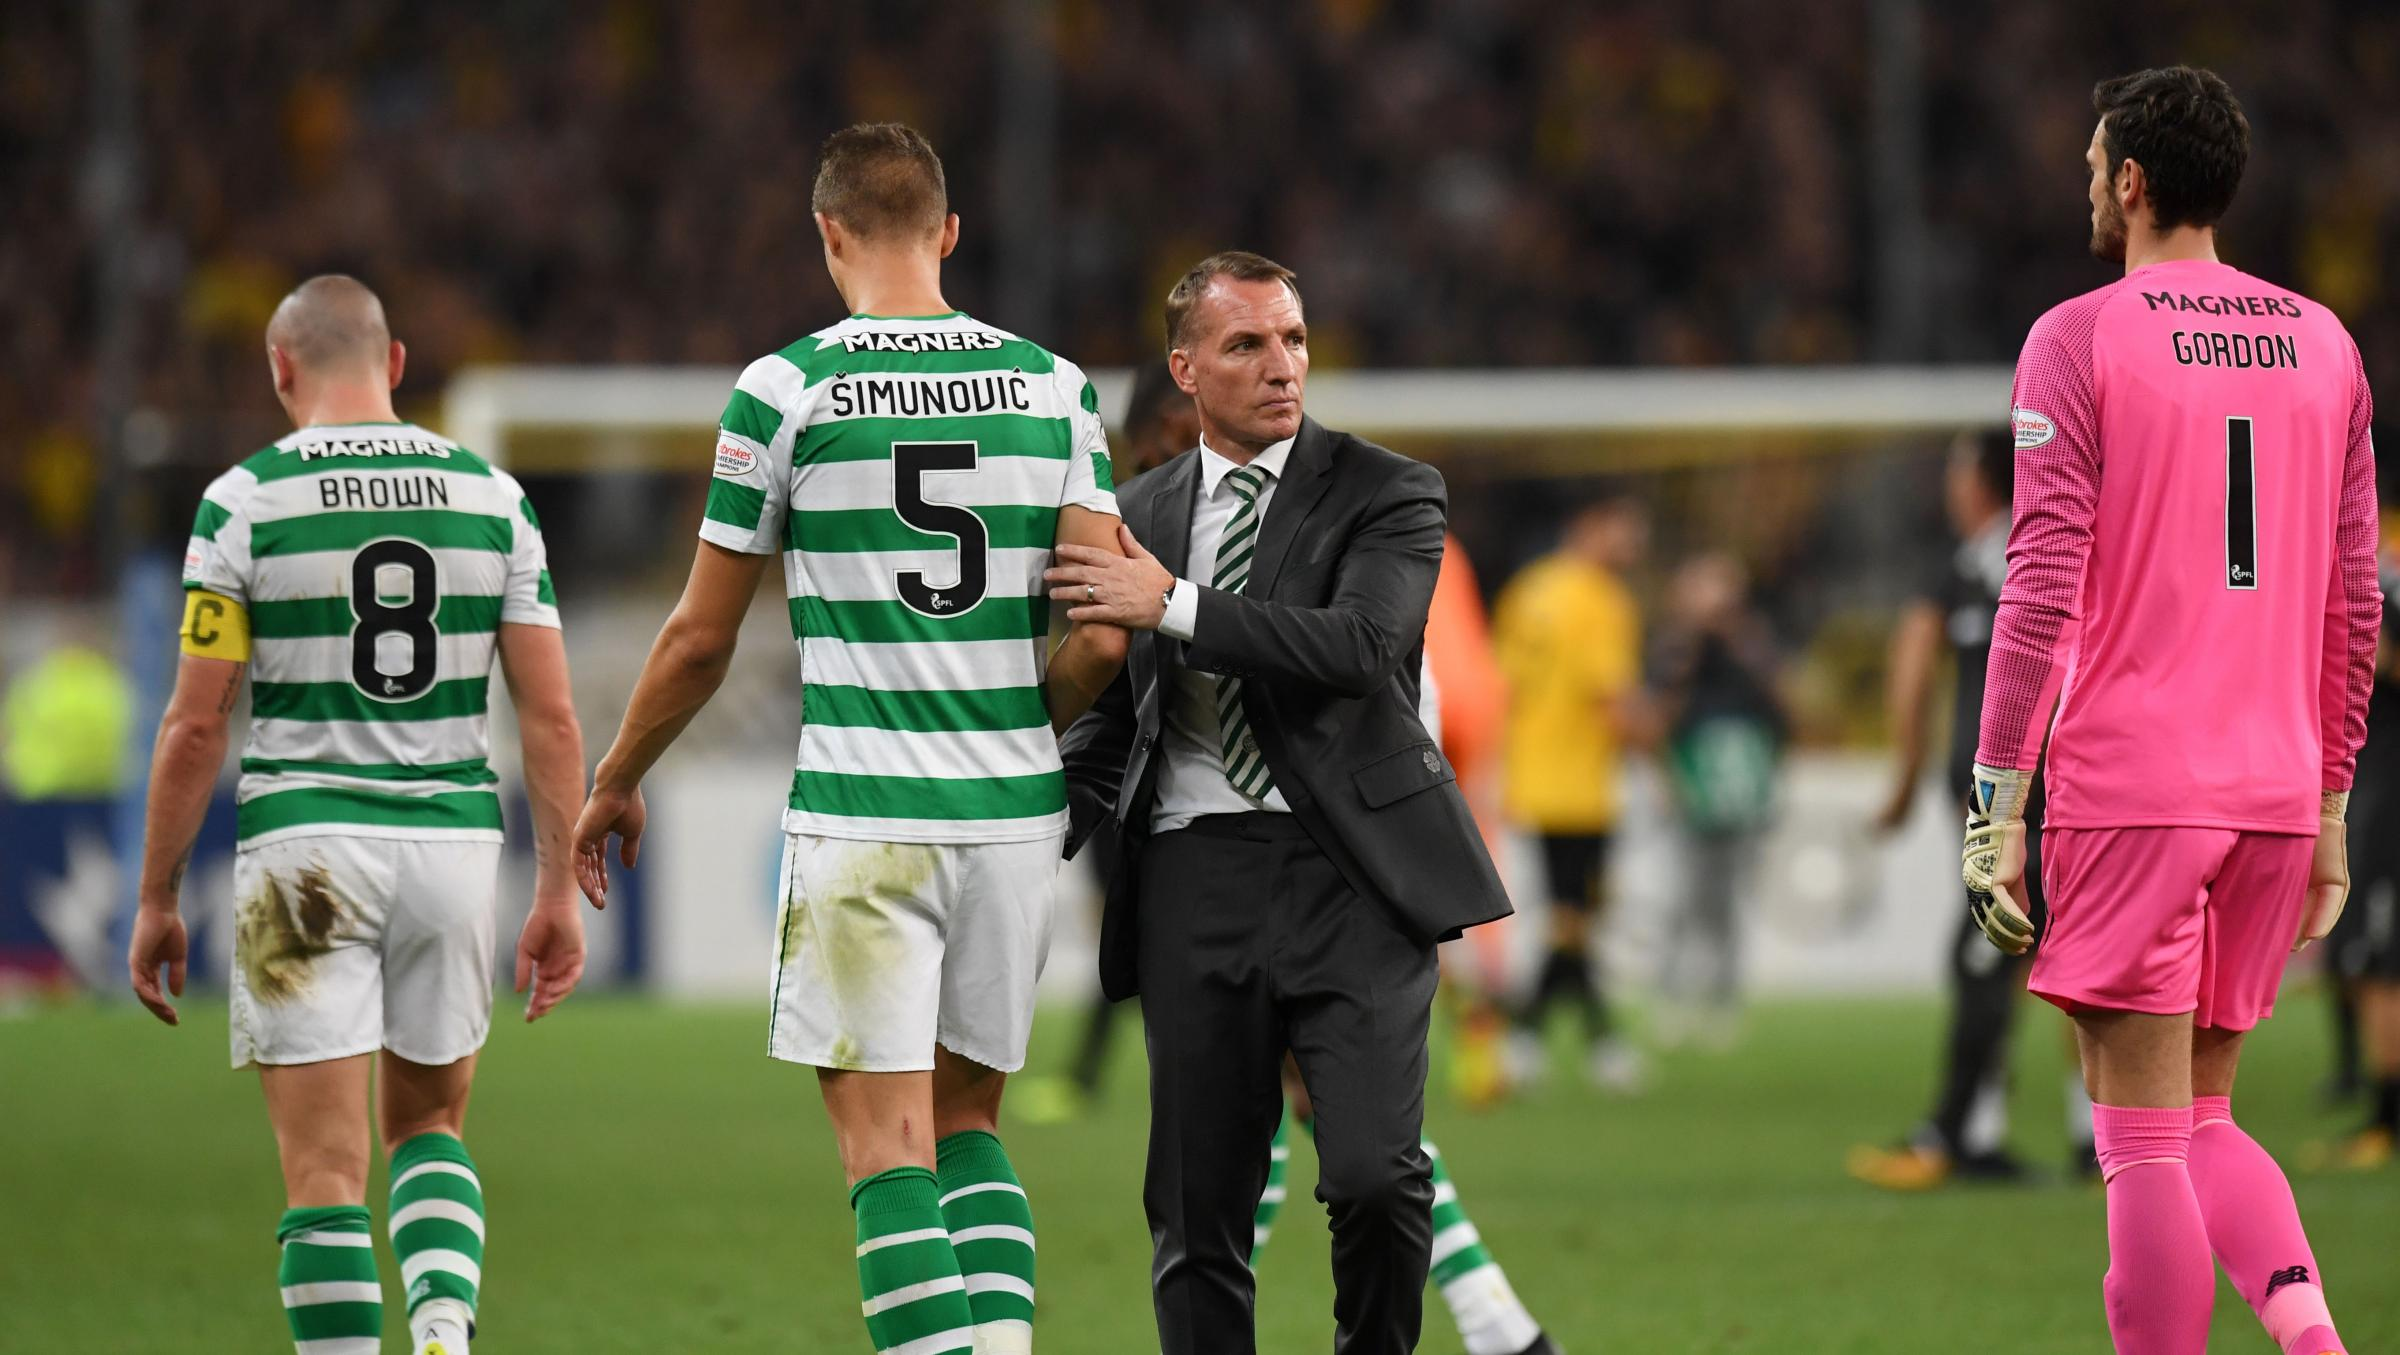 14/08/18 UEFA CHAMPIONS LEAGUE QUALIFYING THIRD ROUND QUALIFIER 2nd LEG. AEK ATHENS v CELTIC . ATHENS - GREECE. Celtic manager Brendan Rodgers at full time.